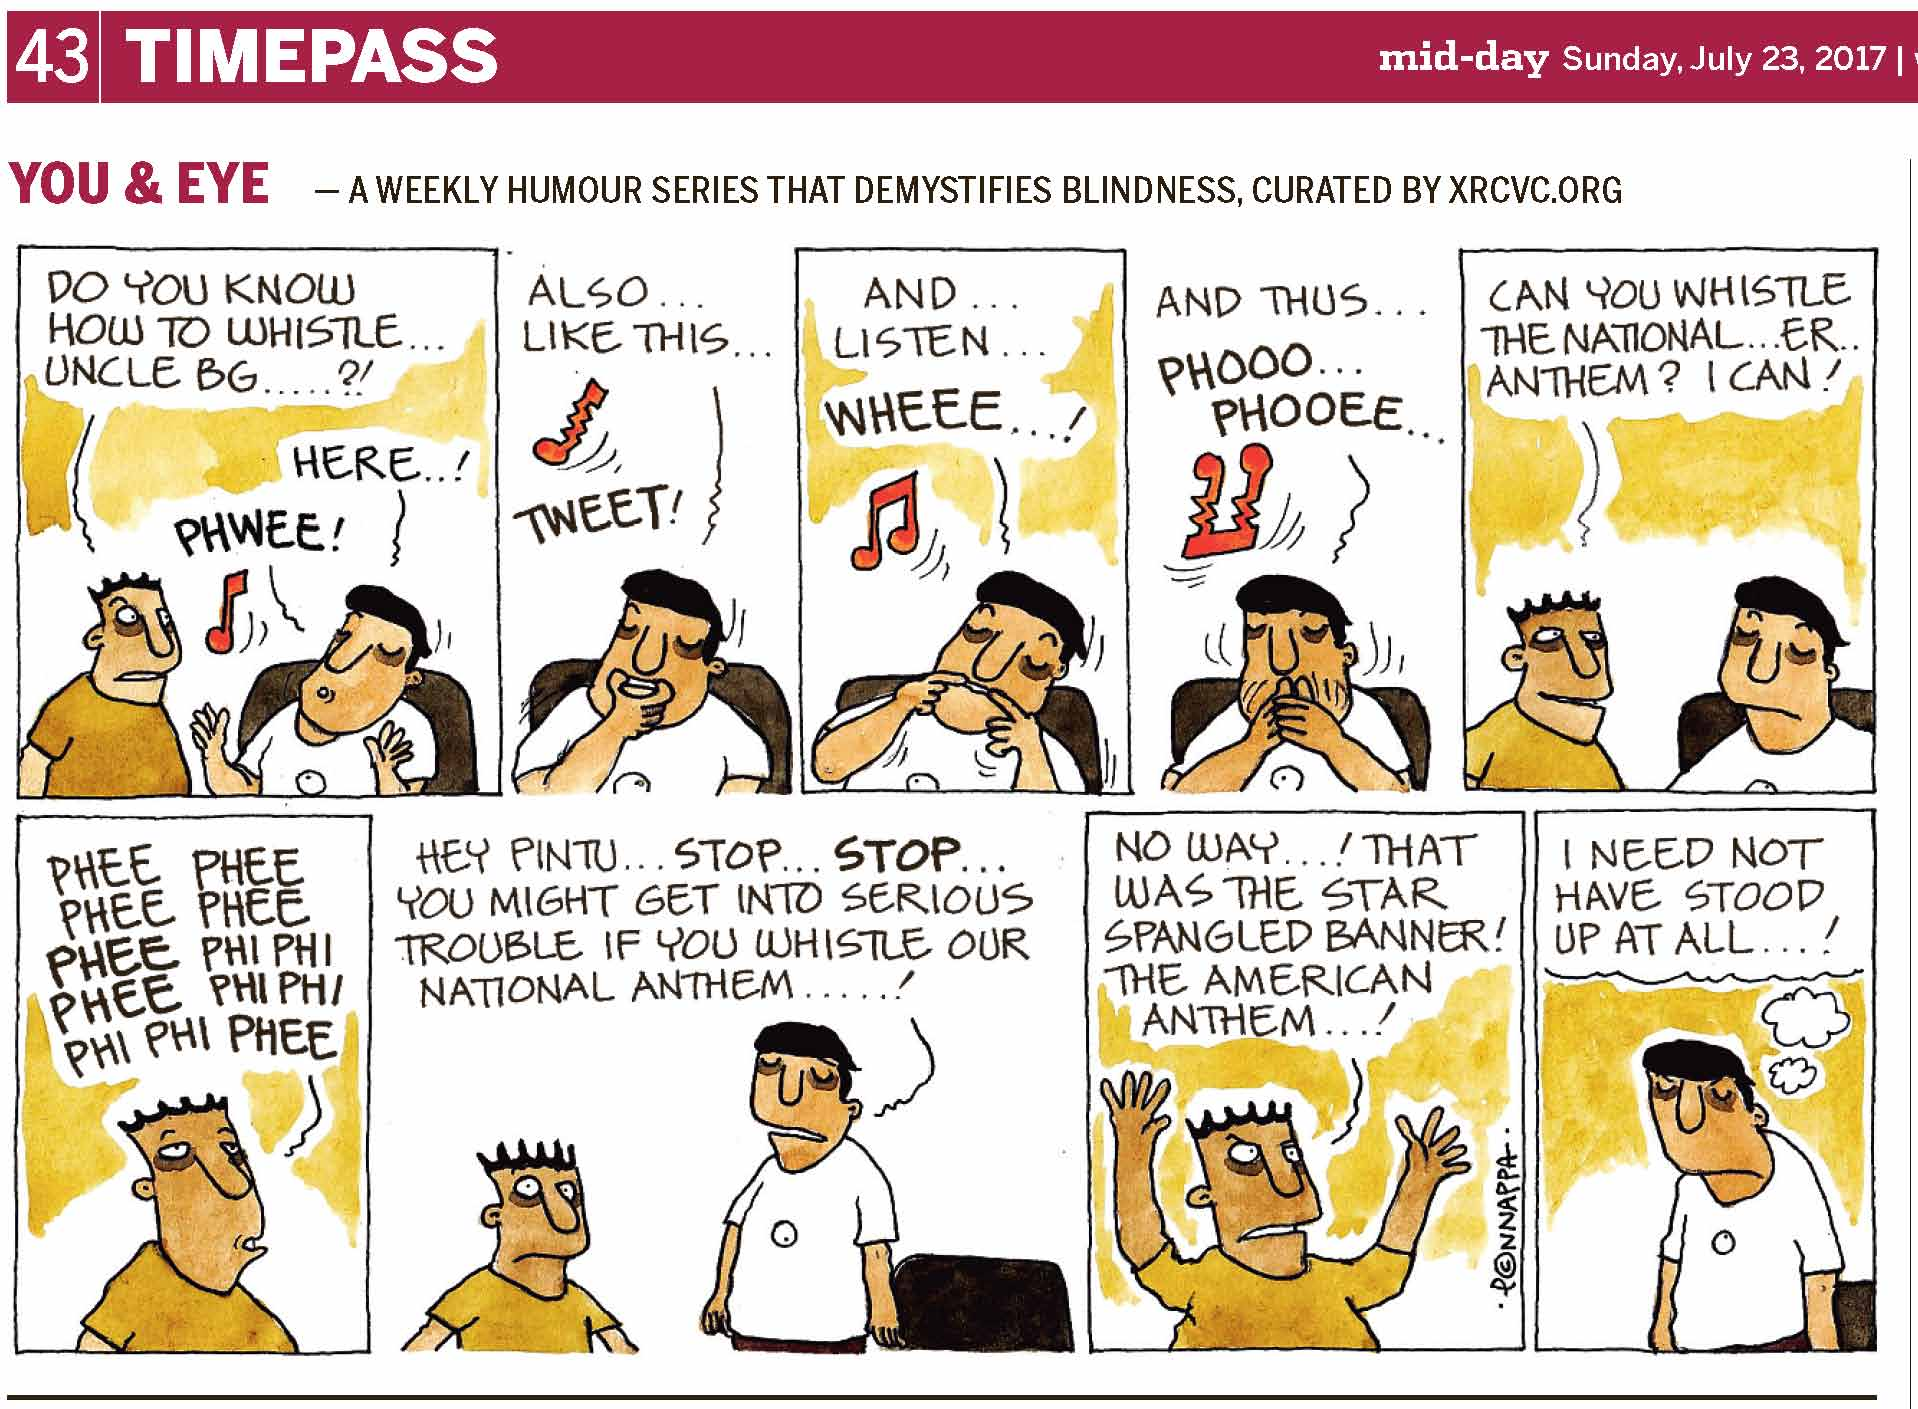 (top-left) 43 | TIMEPASS (top-right) mid-day Sunday, July 23, 2017 